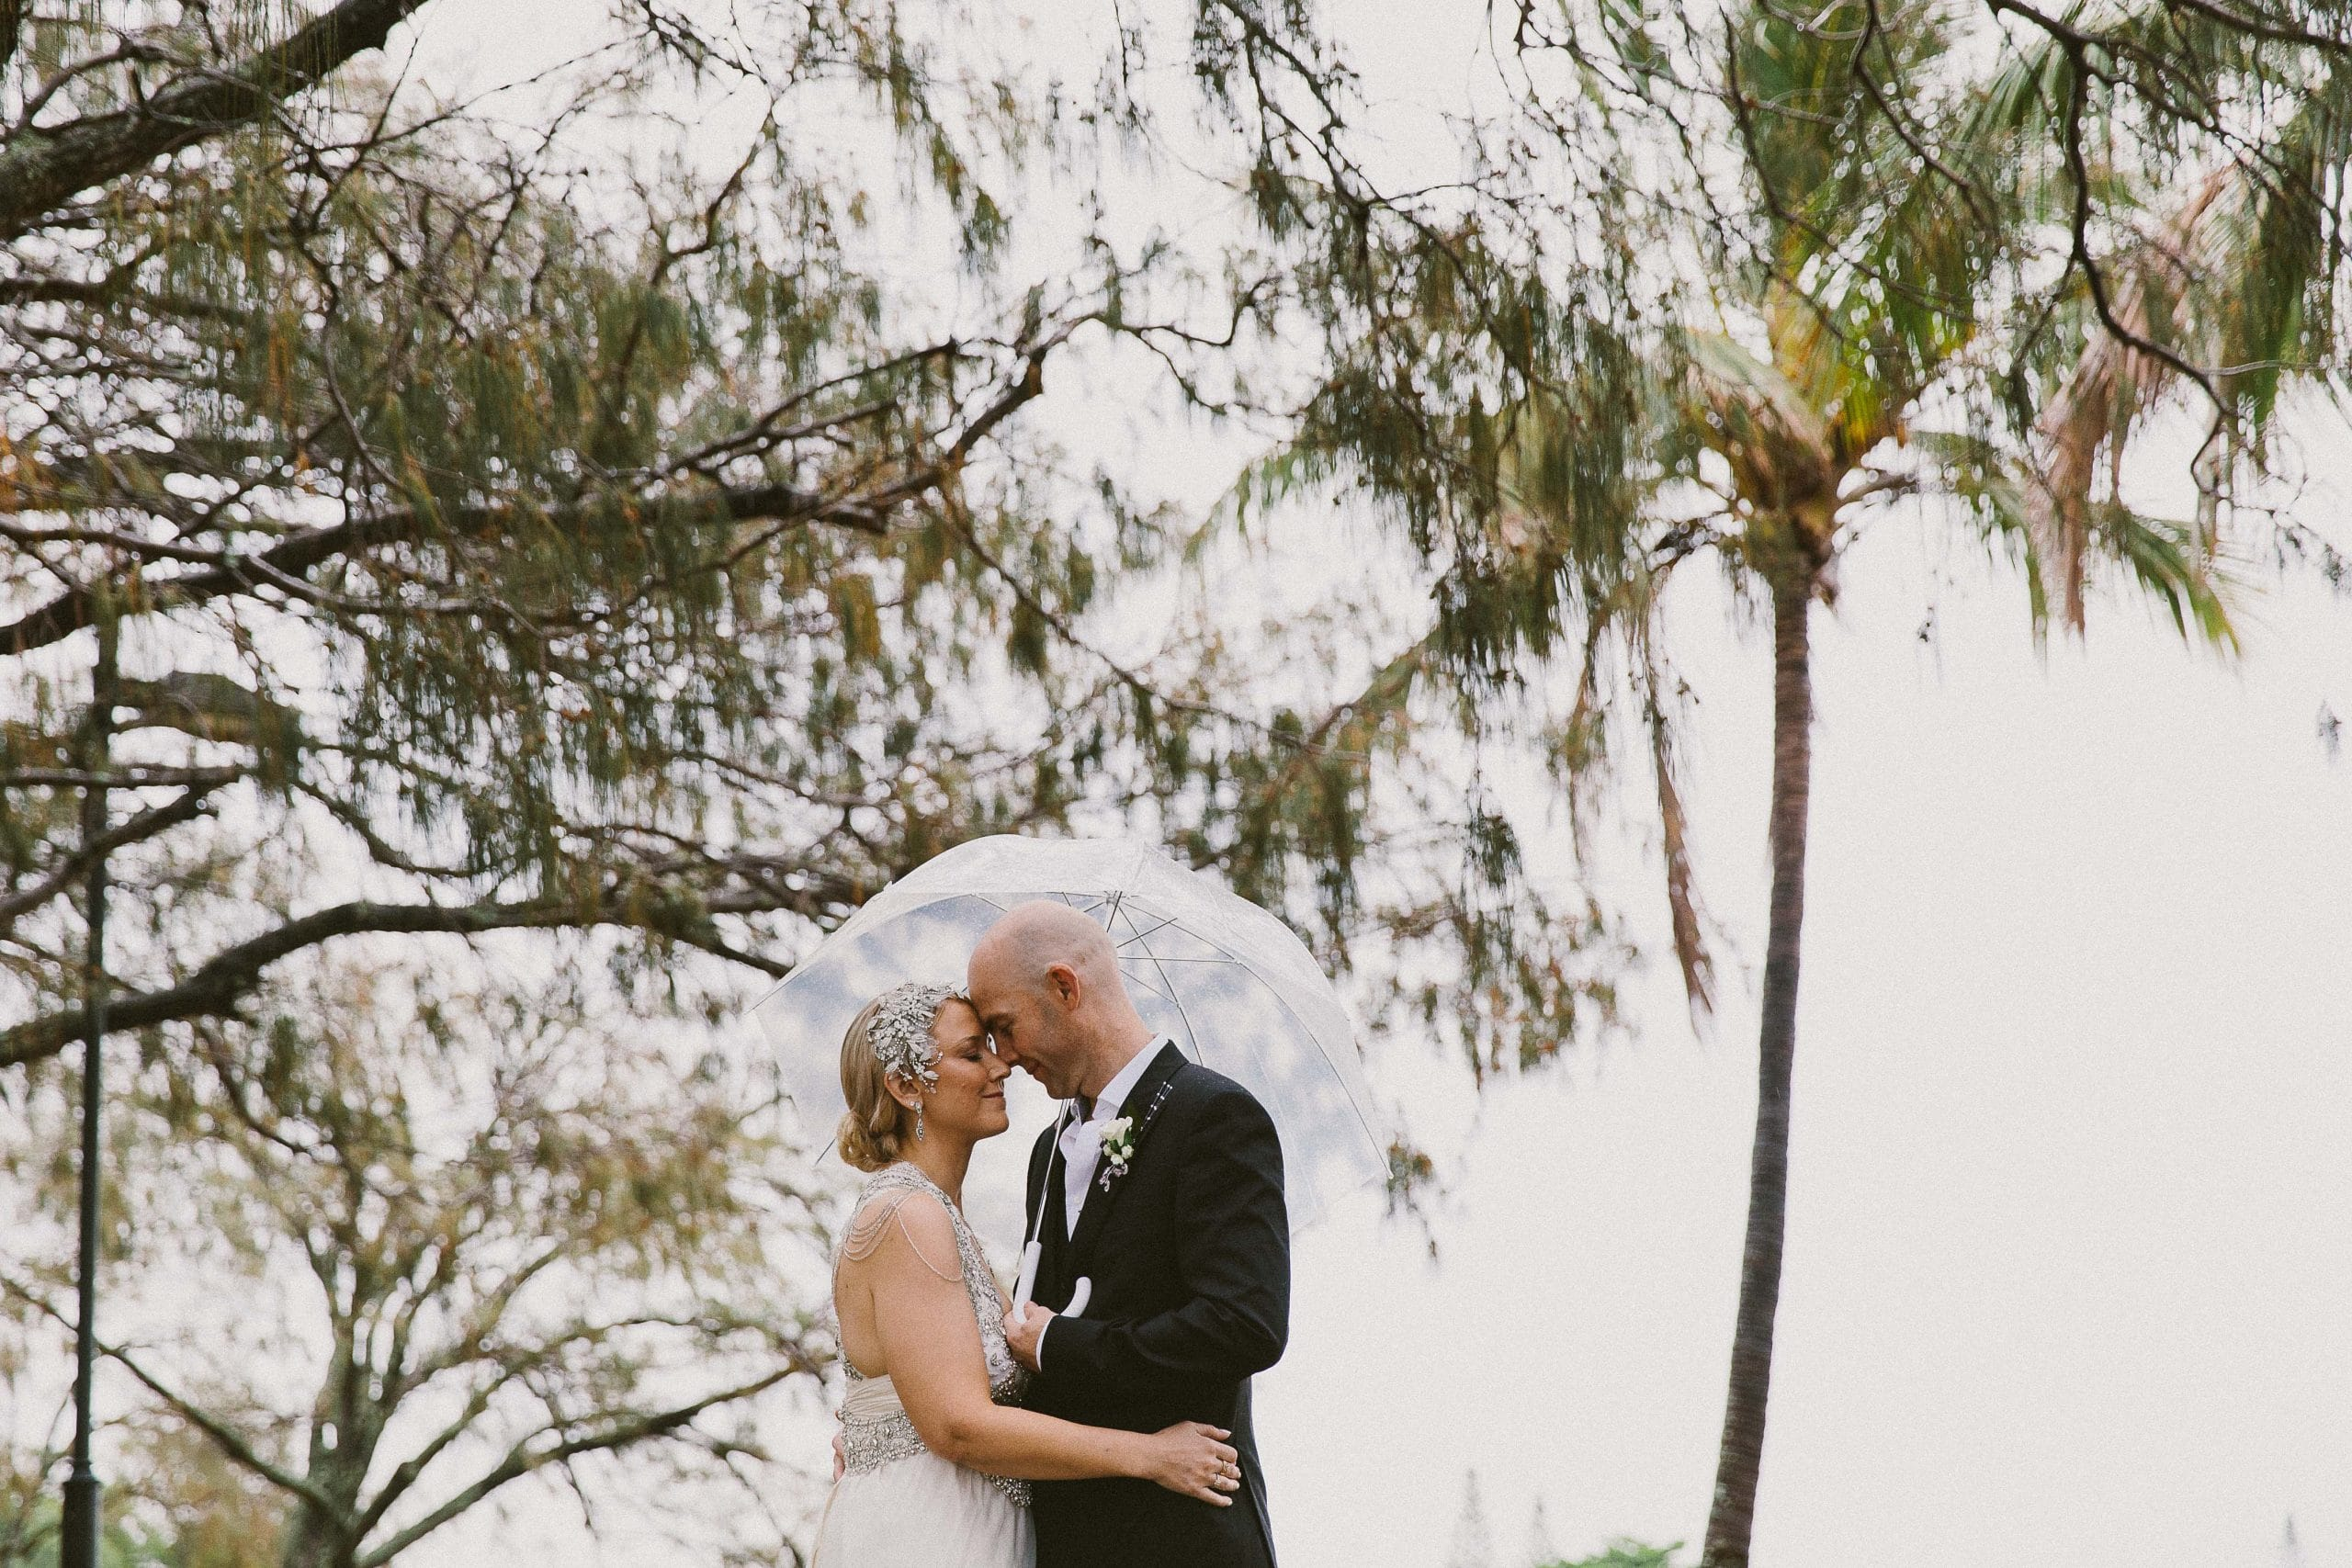 Brisbane Wedding Photography Prices